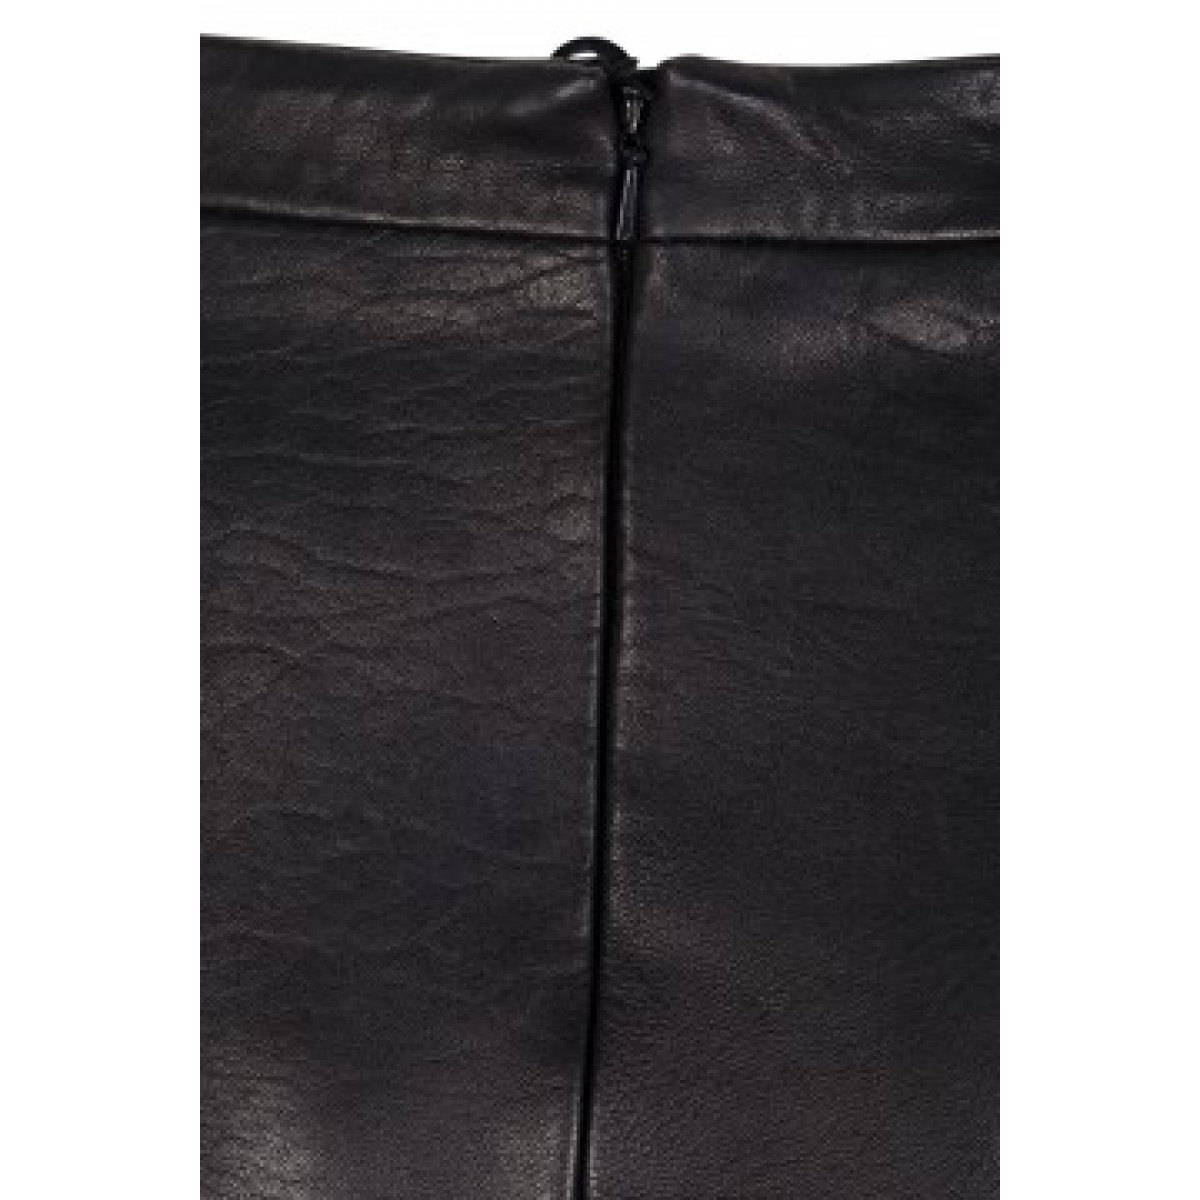 Oui 48675-9990 Skirt Black-31